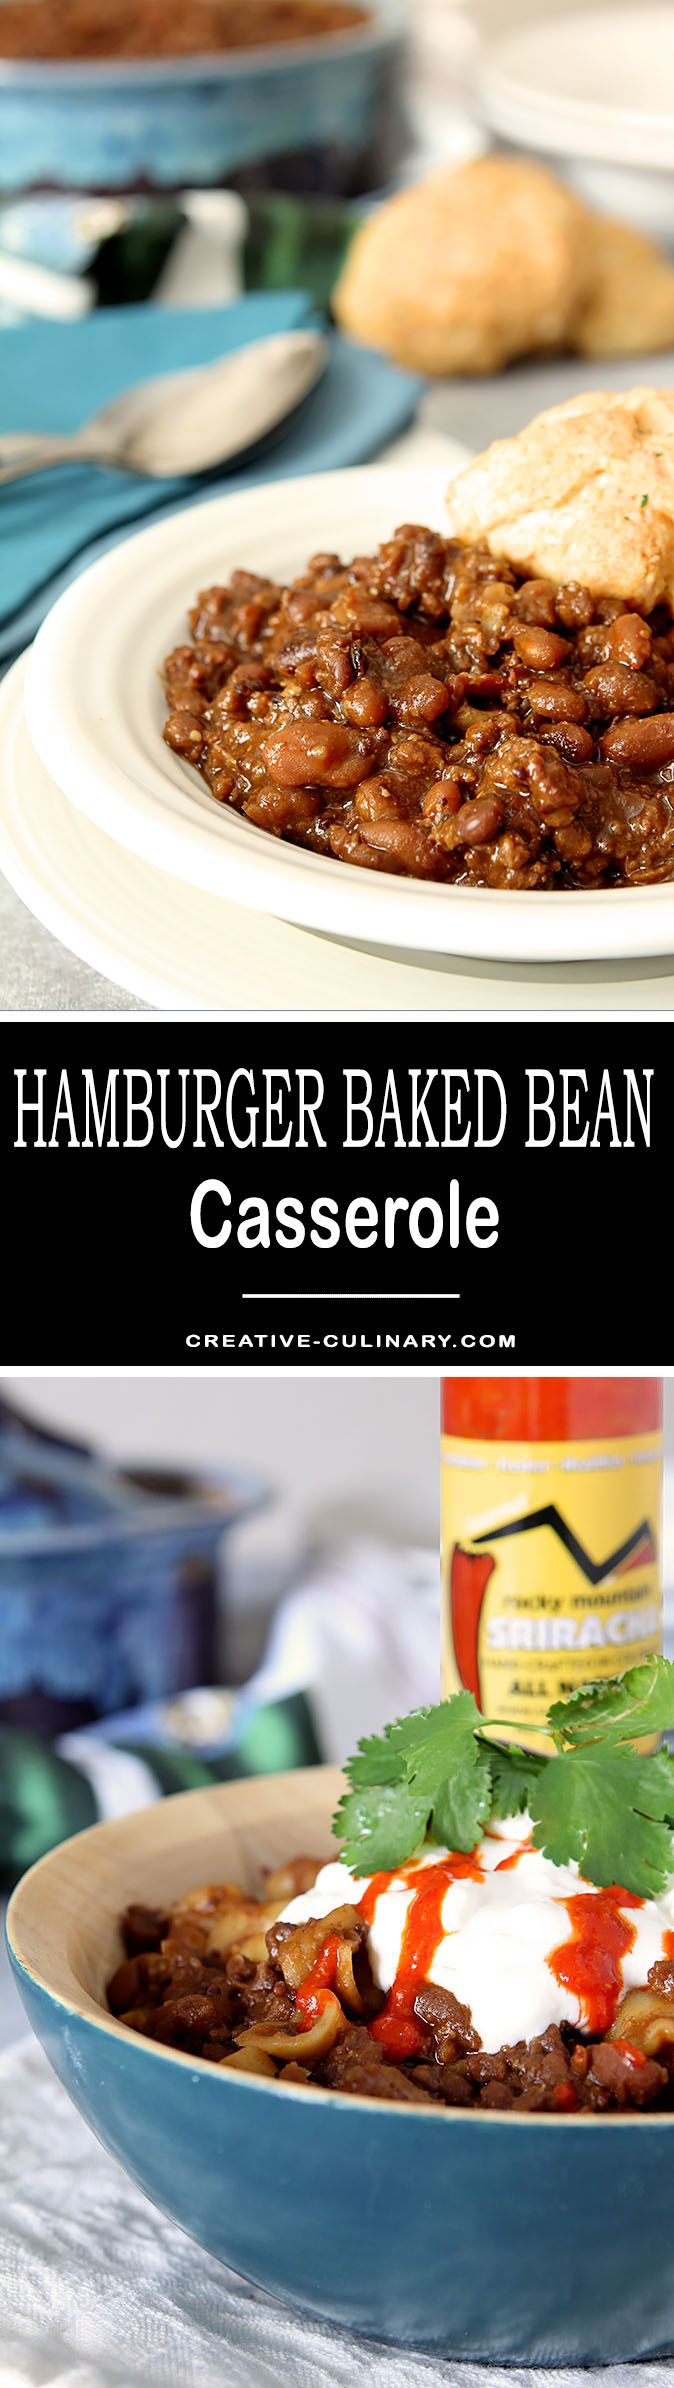 This simple Hamburger Baked Bean Casserole with Sriracha is a fantastic update to what was a staple in our home growing up. A bit of spice is nice! via @creativculinary